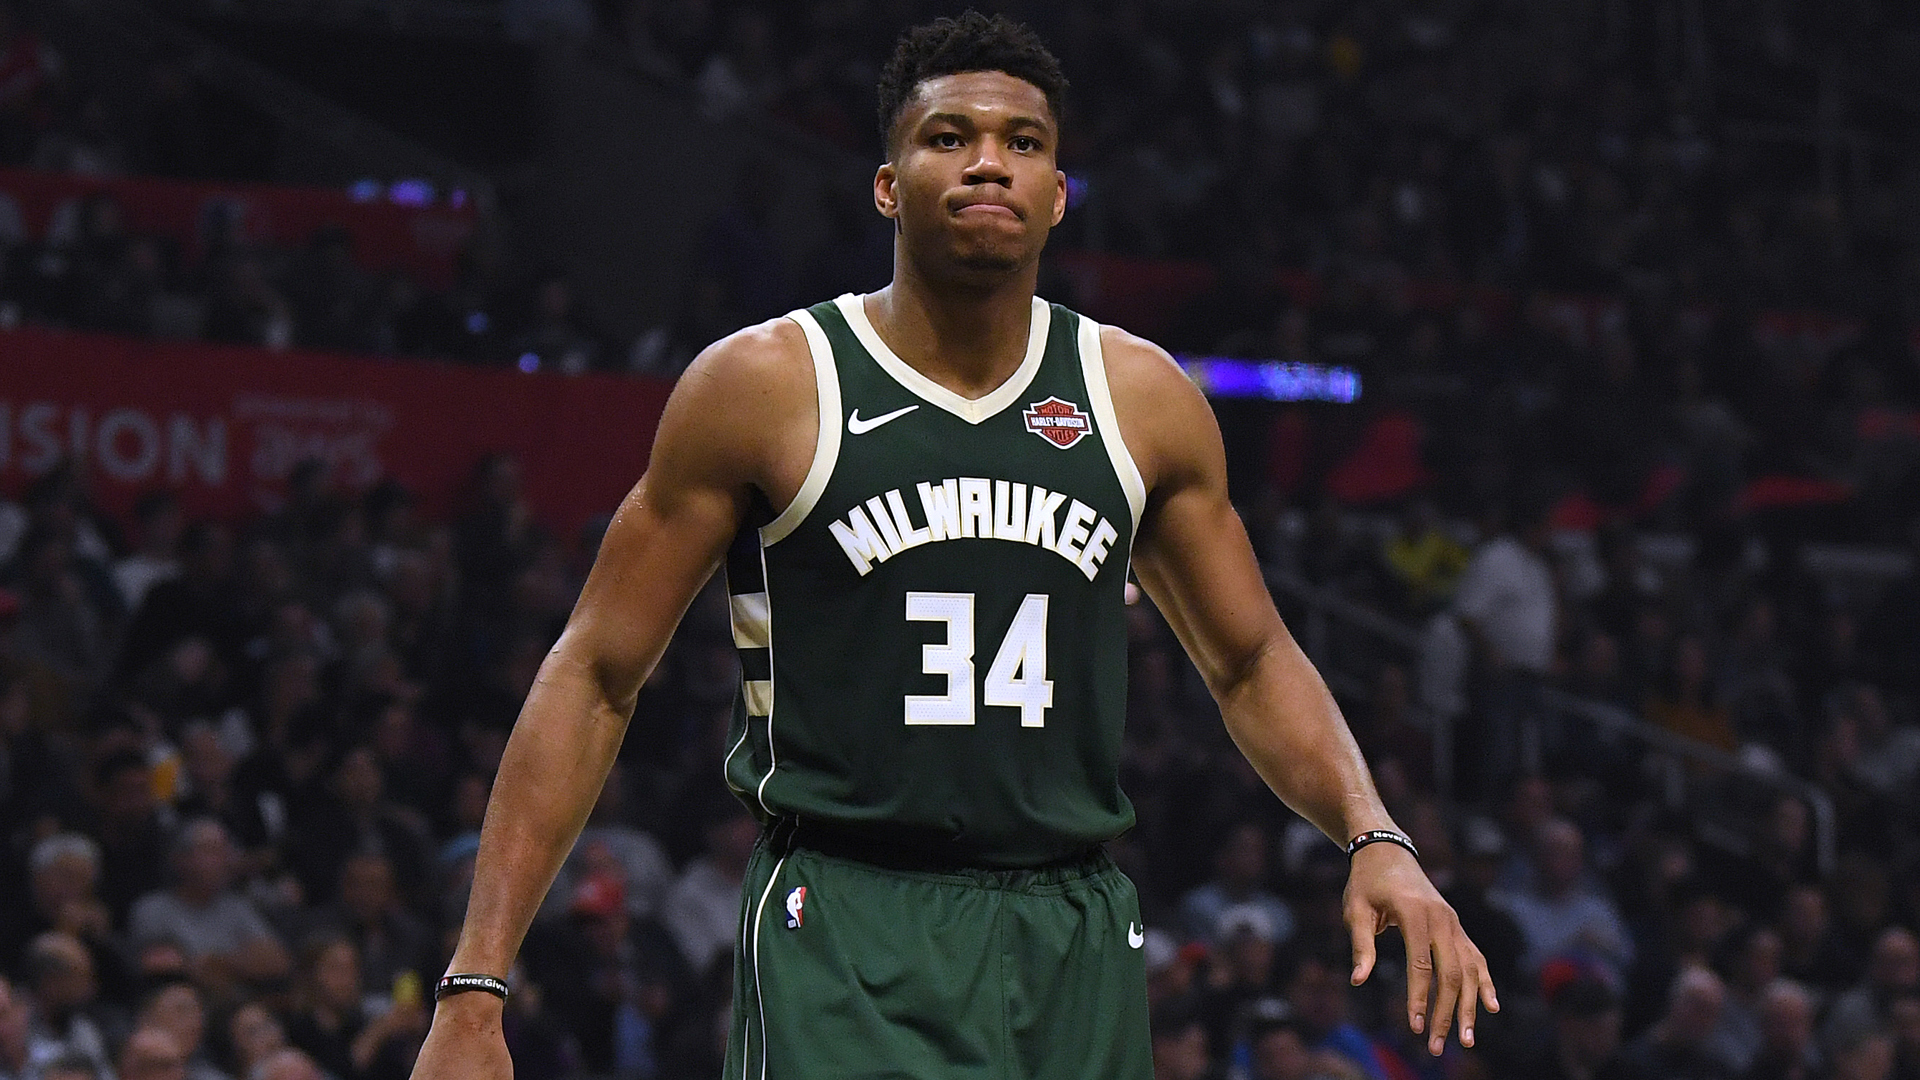 The Milwaukee Bucks beat the Brooklyn Nets 117-97 and the Los Angeles Lakers downed the Houston Rockets 124-115 on Saturday.